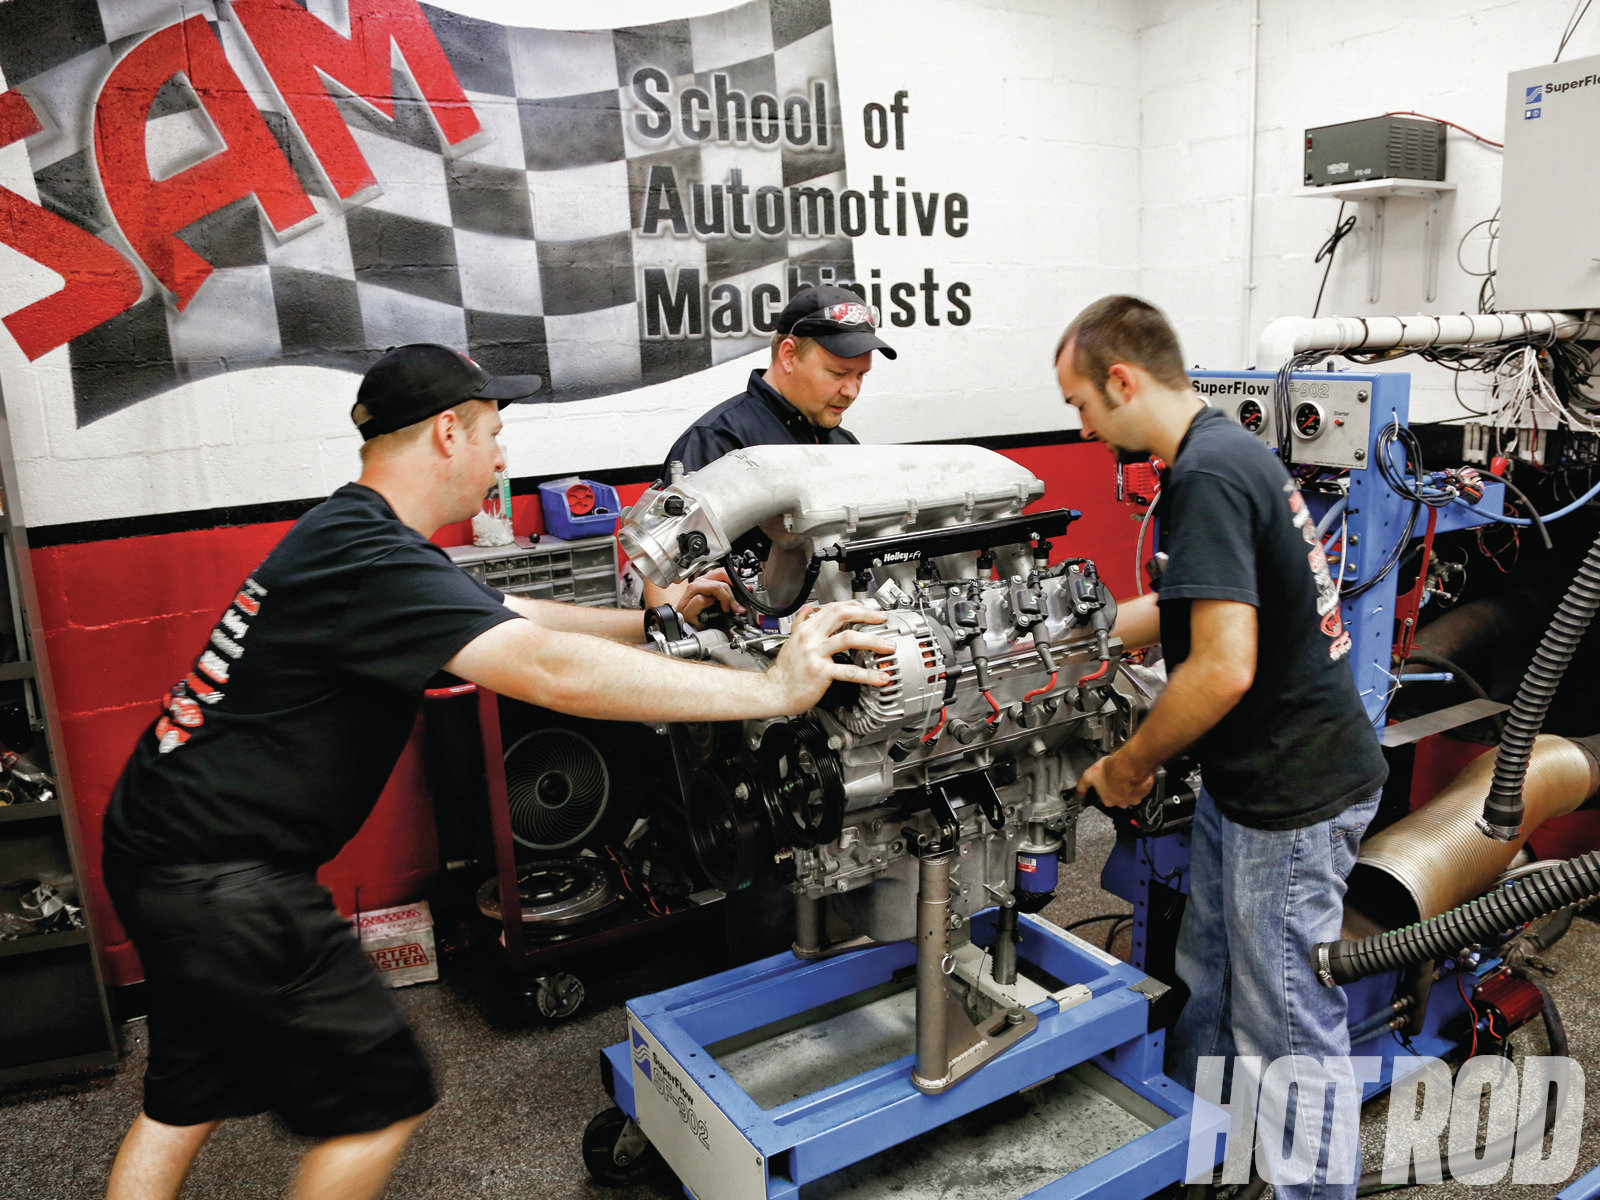 [06] Just like when bolting a transmission to an engine, engaging the flywheel hub onto the dyno's input shaft requires a bit of finagling. There's not much to it other than brute strength, wiggling, and patience.